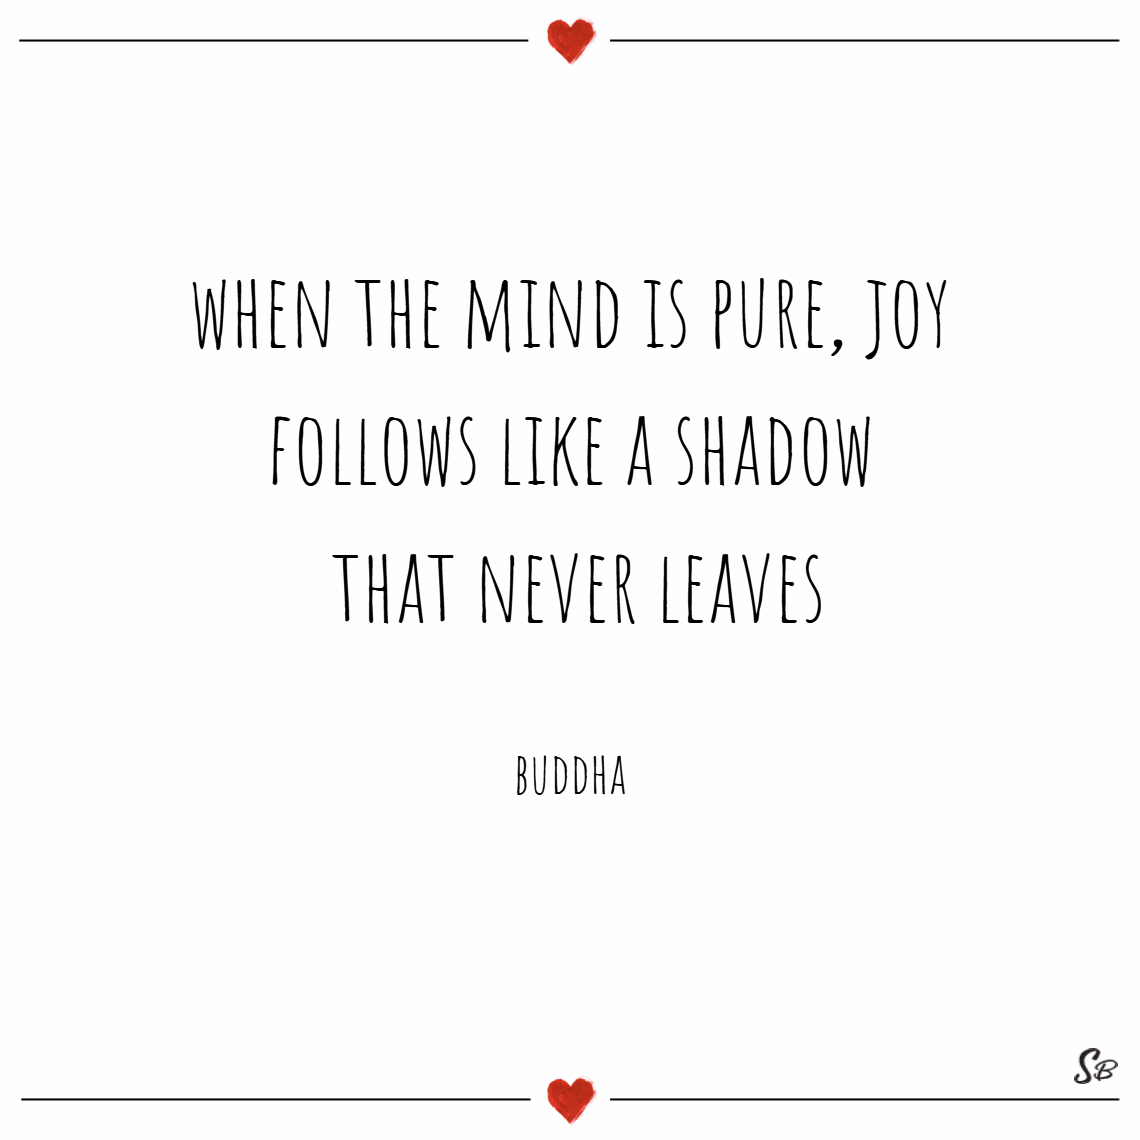 When the mind is pure, joy follows like a shadow that never leaves. – buddha joy quotes